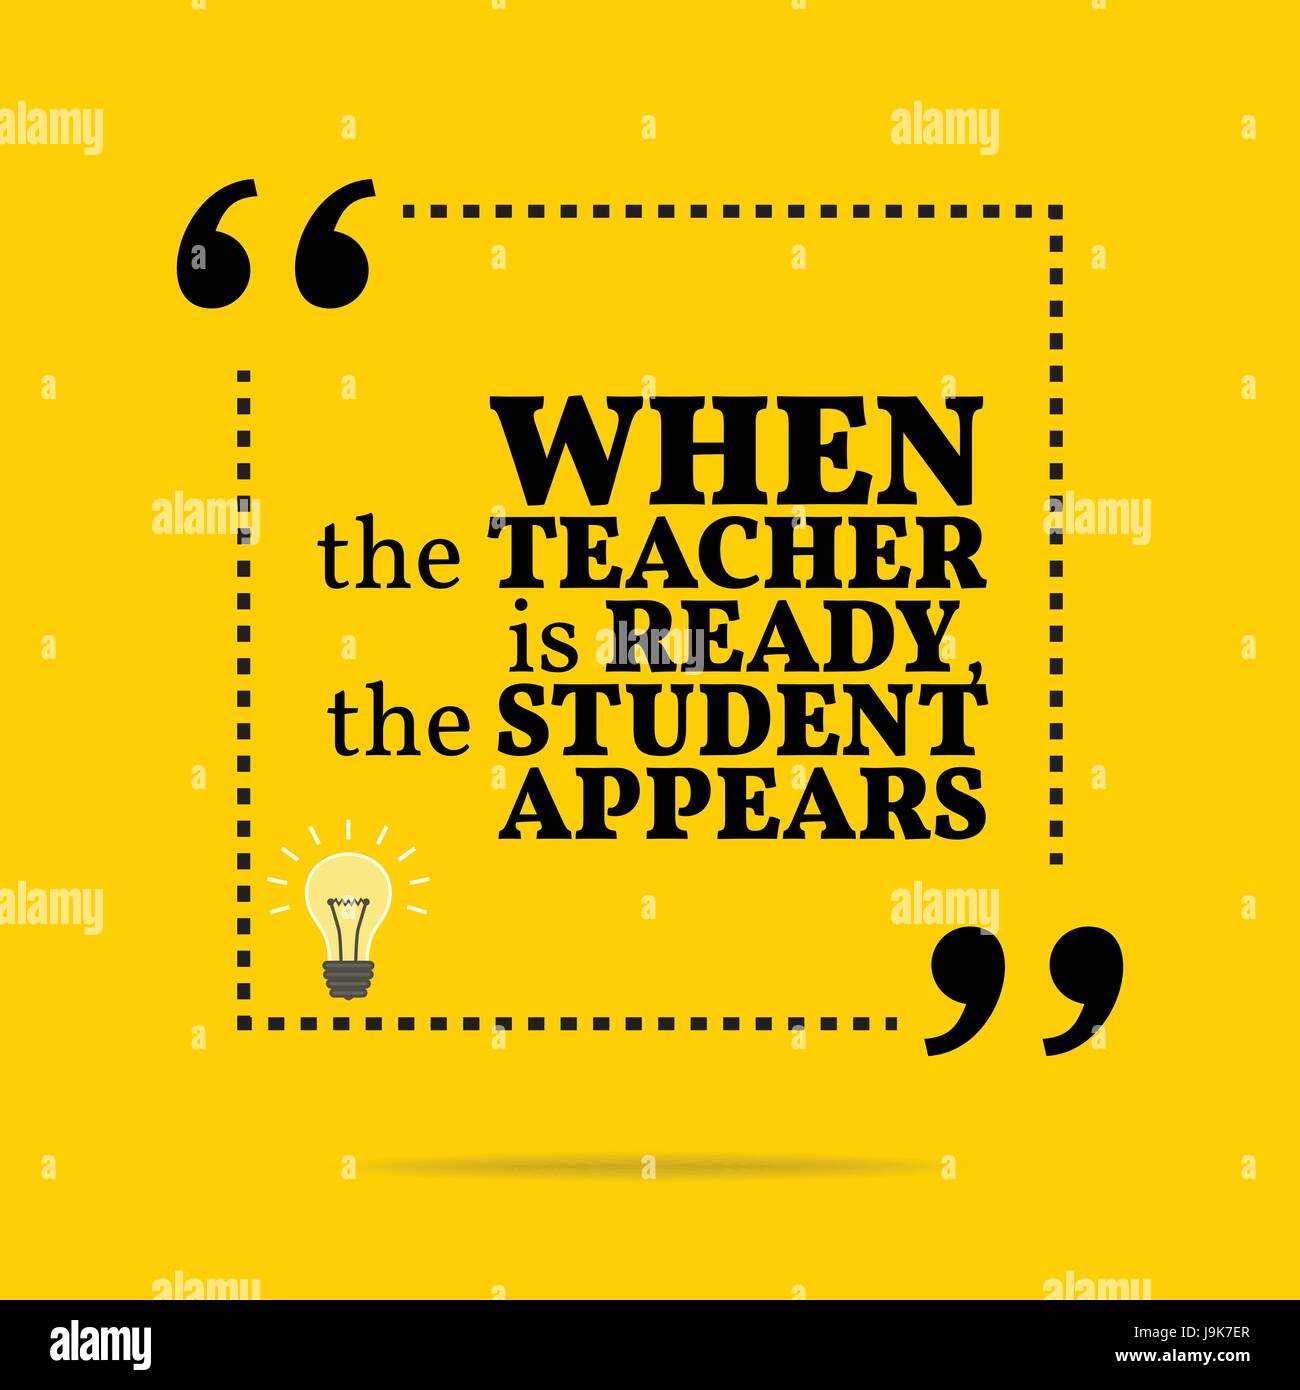 Inspirational motivational quote. When the teacher is ready, the student appears. Simple trendy design. - Stock Vector